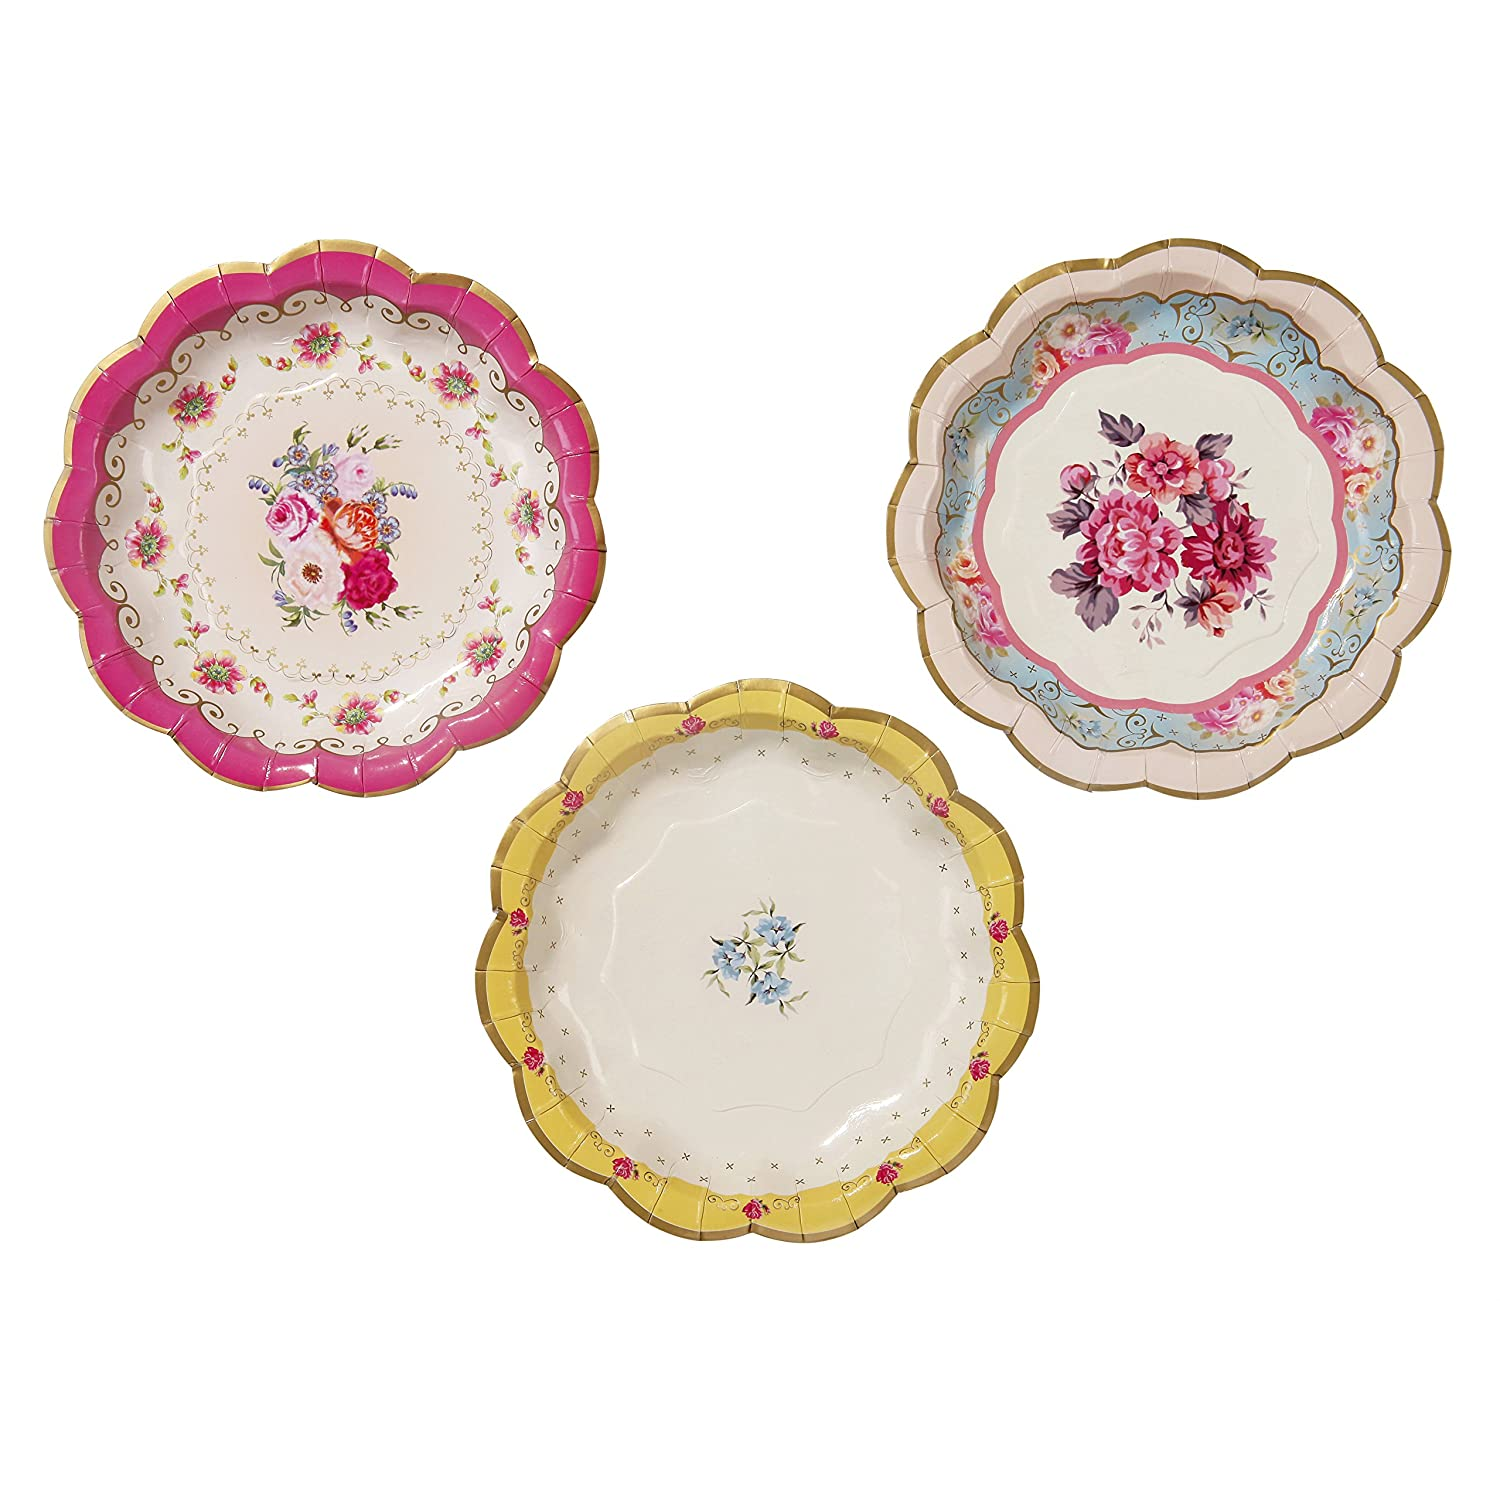 Talking Tables Truly Scrumptious Cake Plates for Parties (12 Pack) Colors May Vary TS3-PLATE